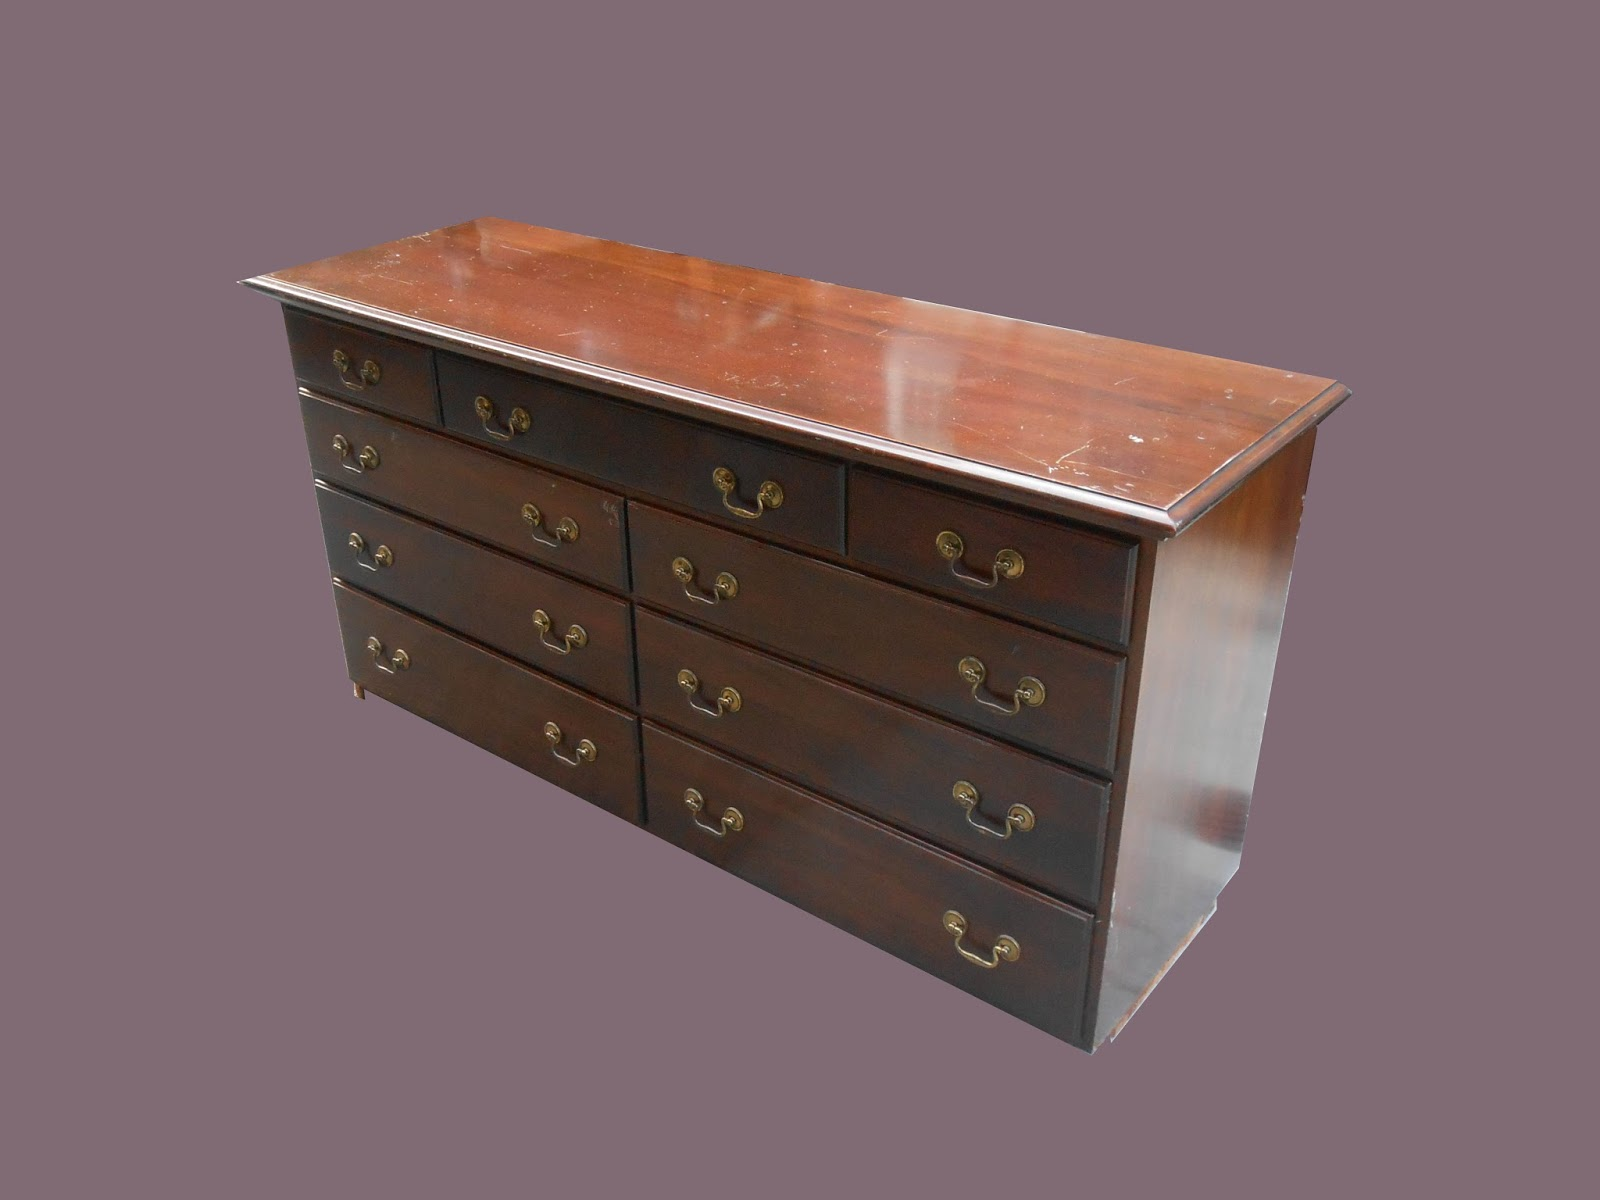 Uhuru furniture collectibles mahogany dresser with Handles for bedroom furniture